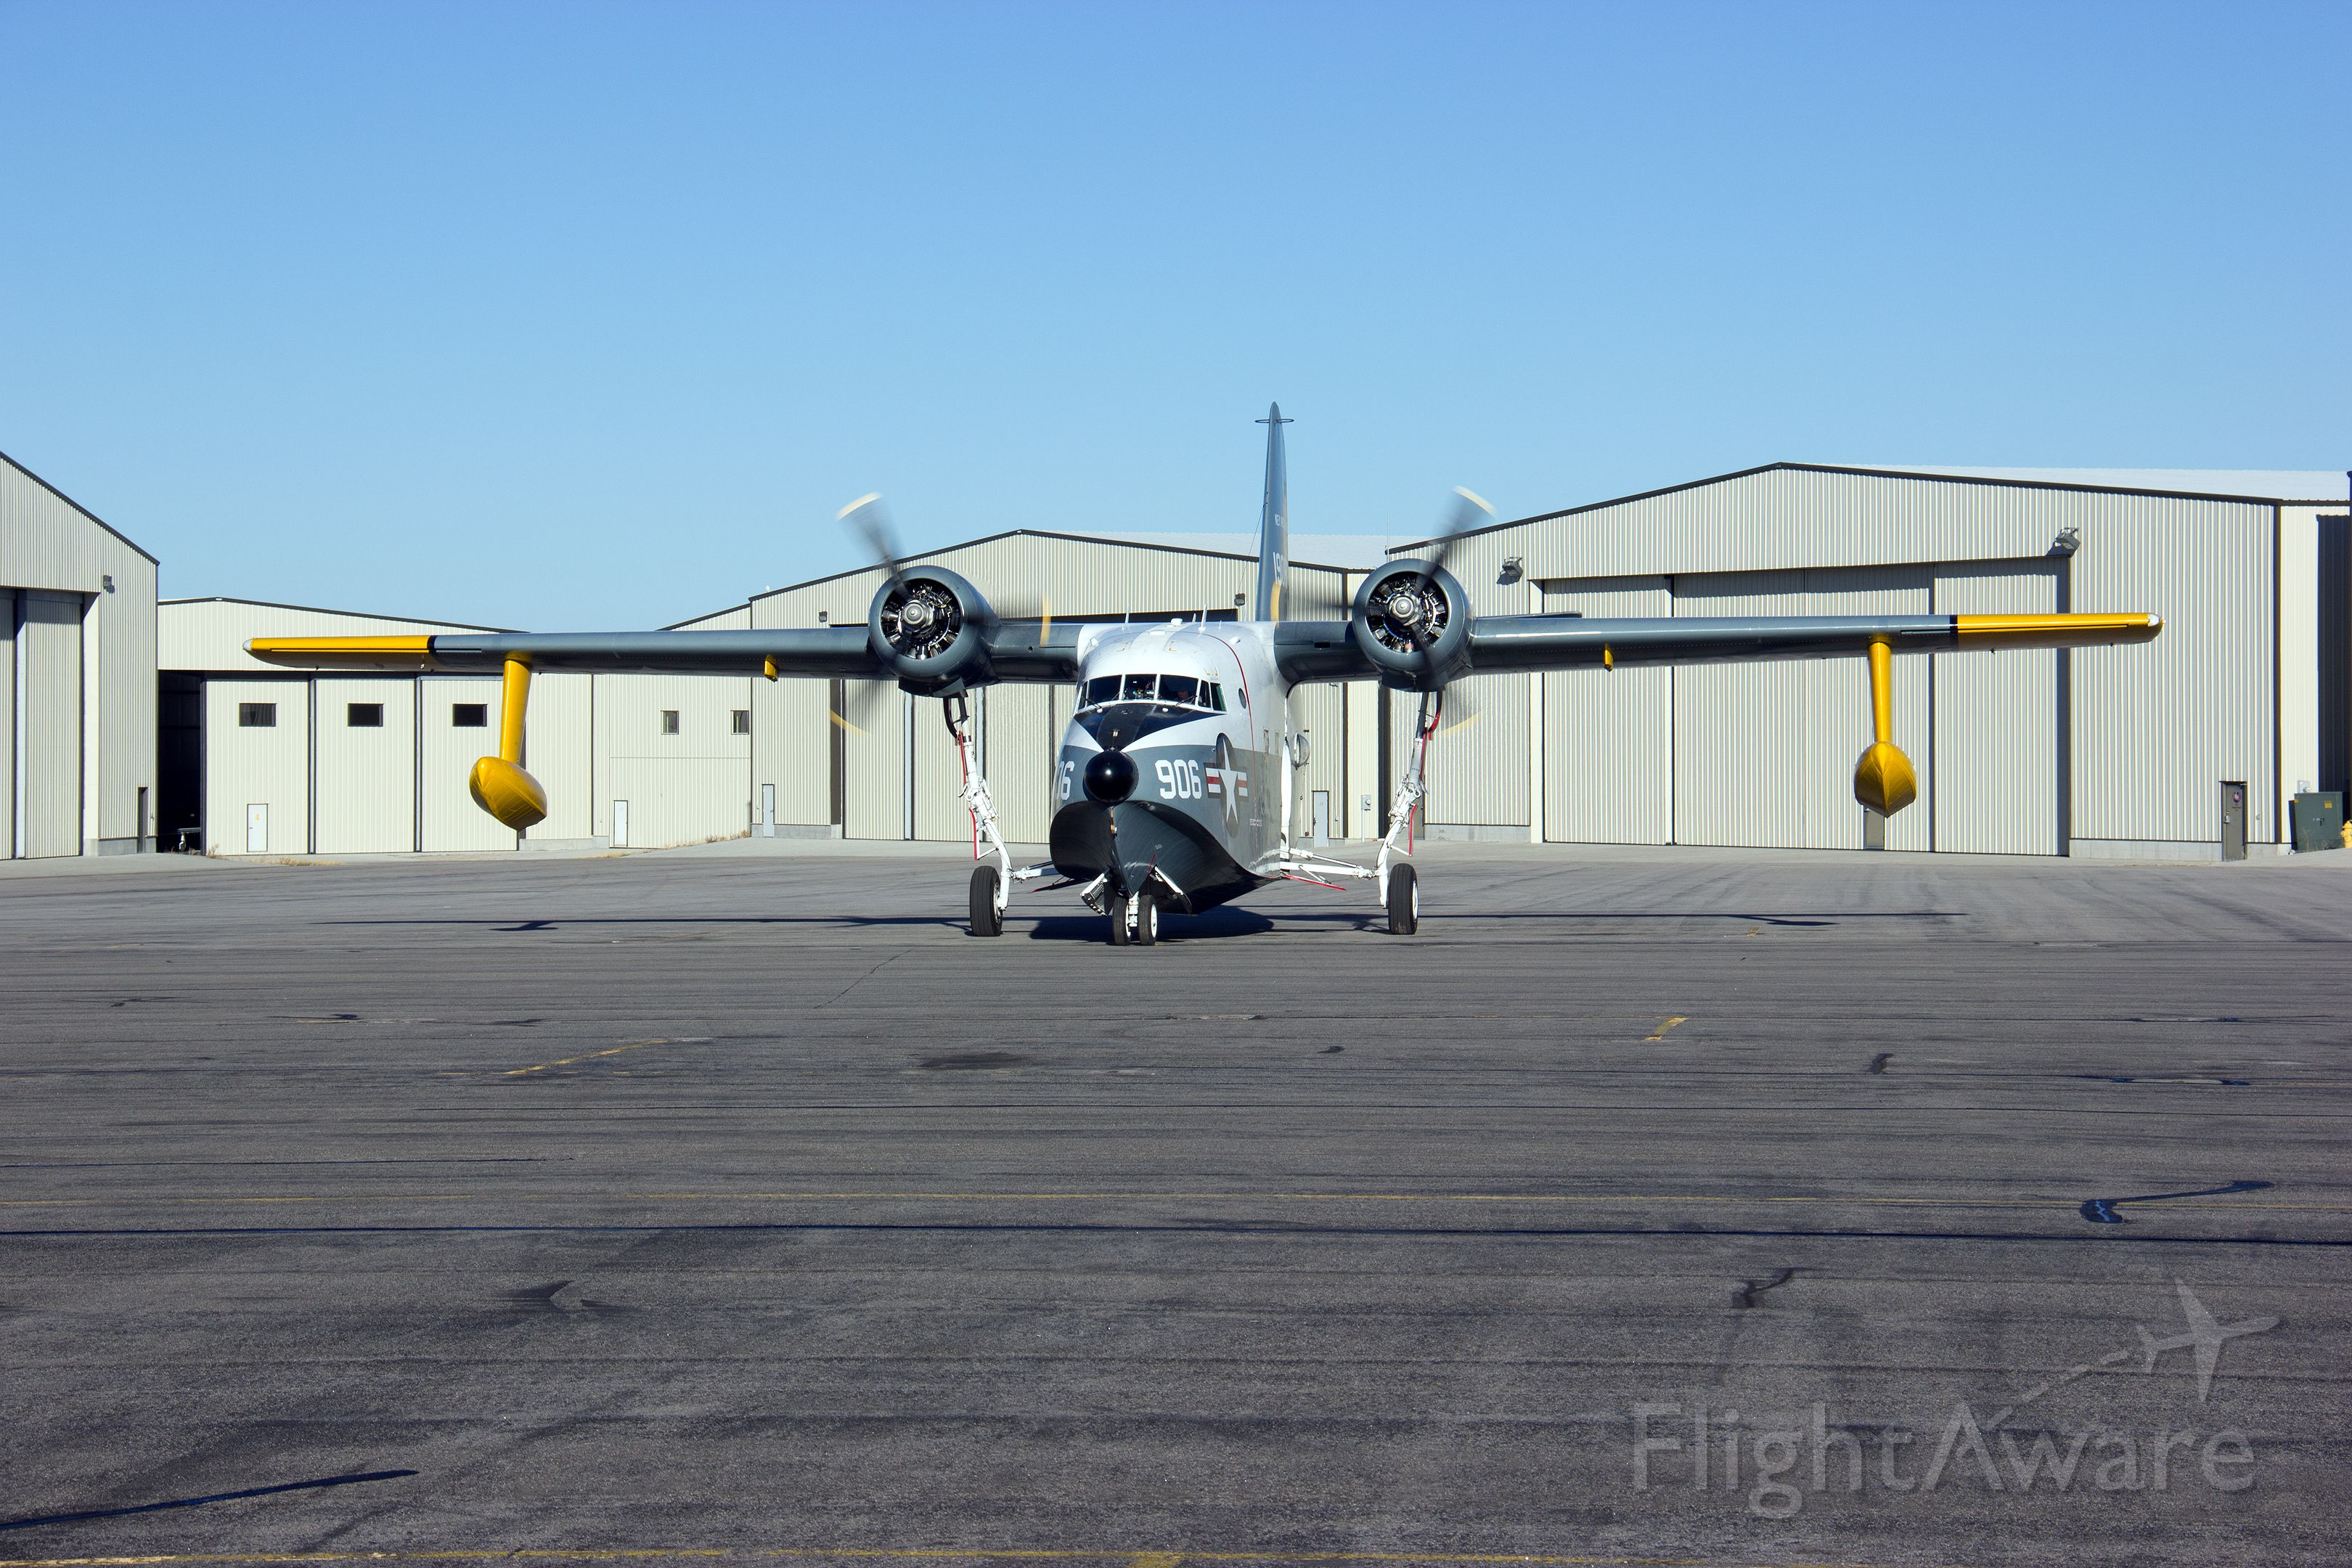 N3HU — - Located at the Teton Aviation Center, Driggs, ID.  Picture was taken in Oct 2013.